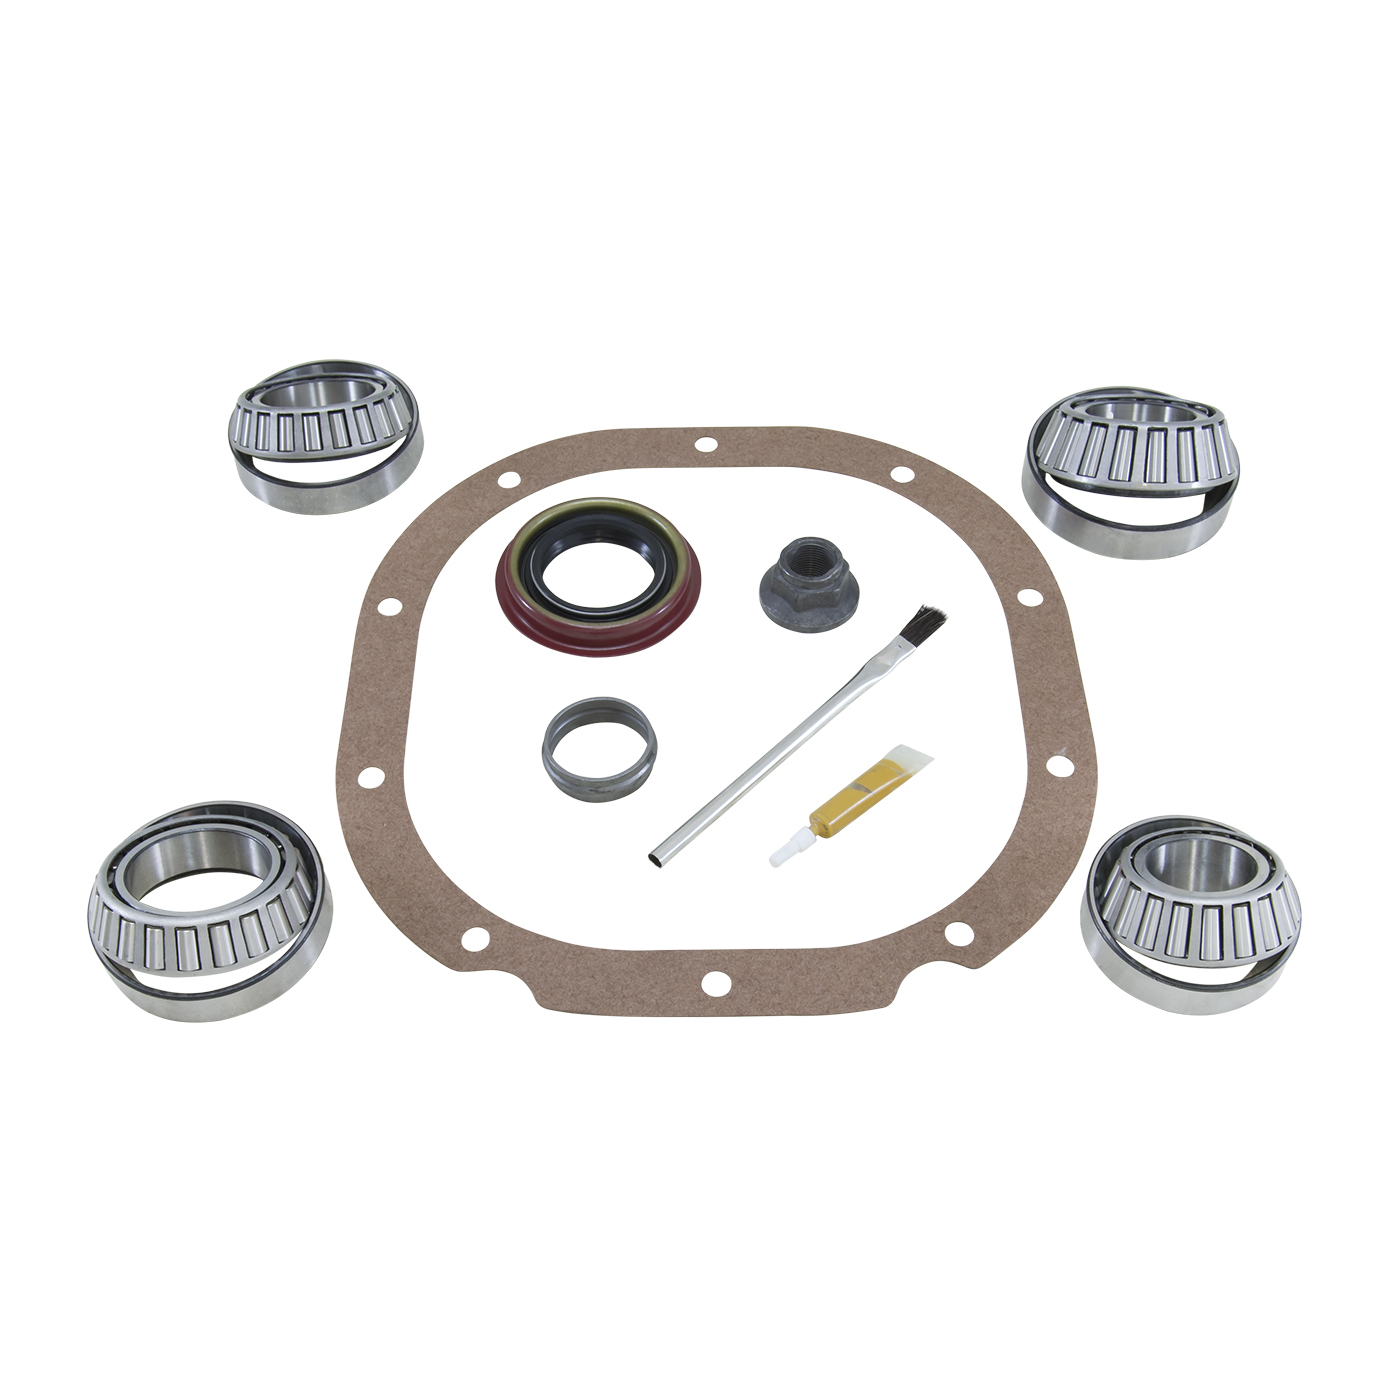 ZBKF8.8 - USA Standard Bearing kit for '09 & down Ford 8.8